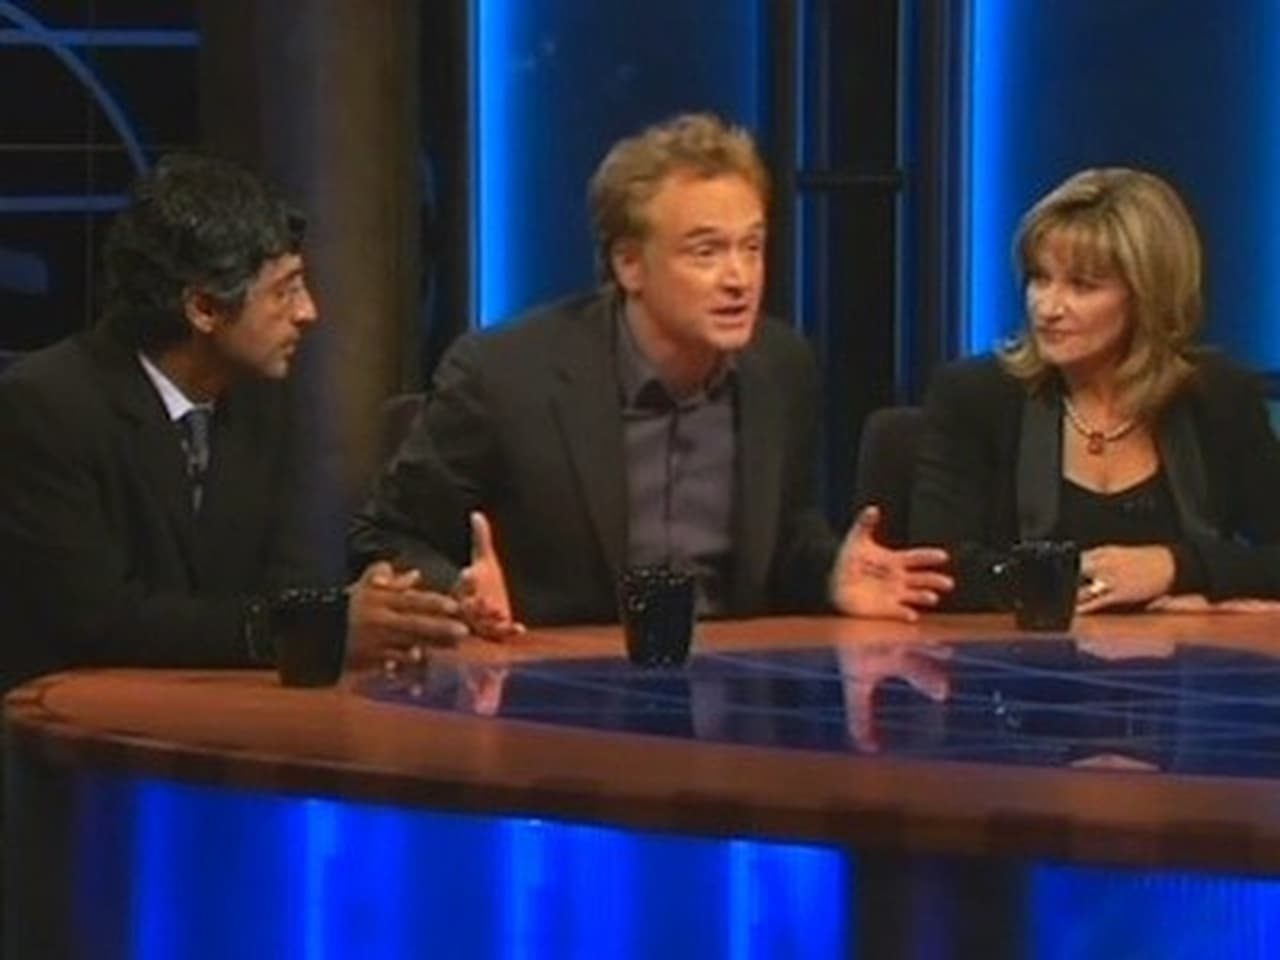 Real Time with Bill Maher - Season 4 Episode 17 : September 22, 2006